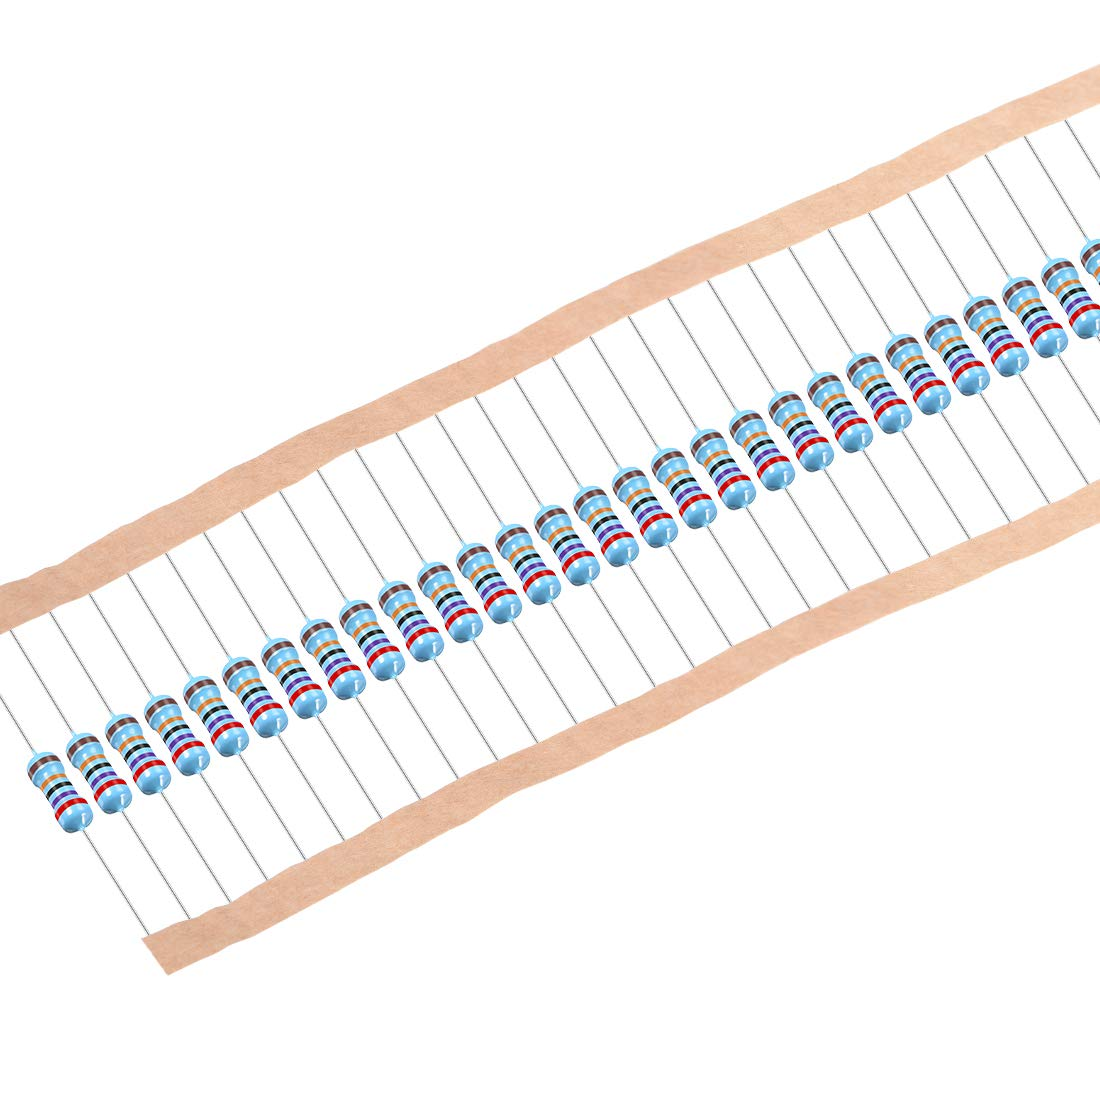 uxcell 100Pcs 270K Ohm Resistor, 1/2W 1% Tolerance Metal Film Resistors, Axial Lead, 5 Bands for DIY Electronic Projects and Experiments